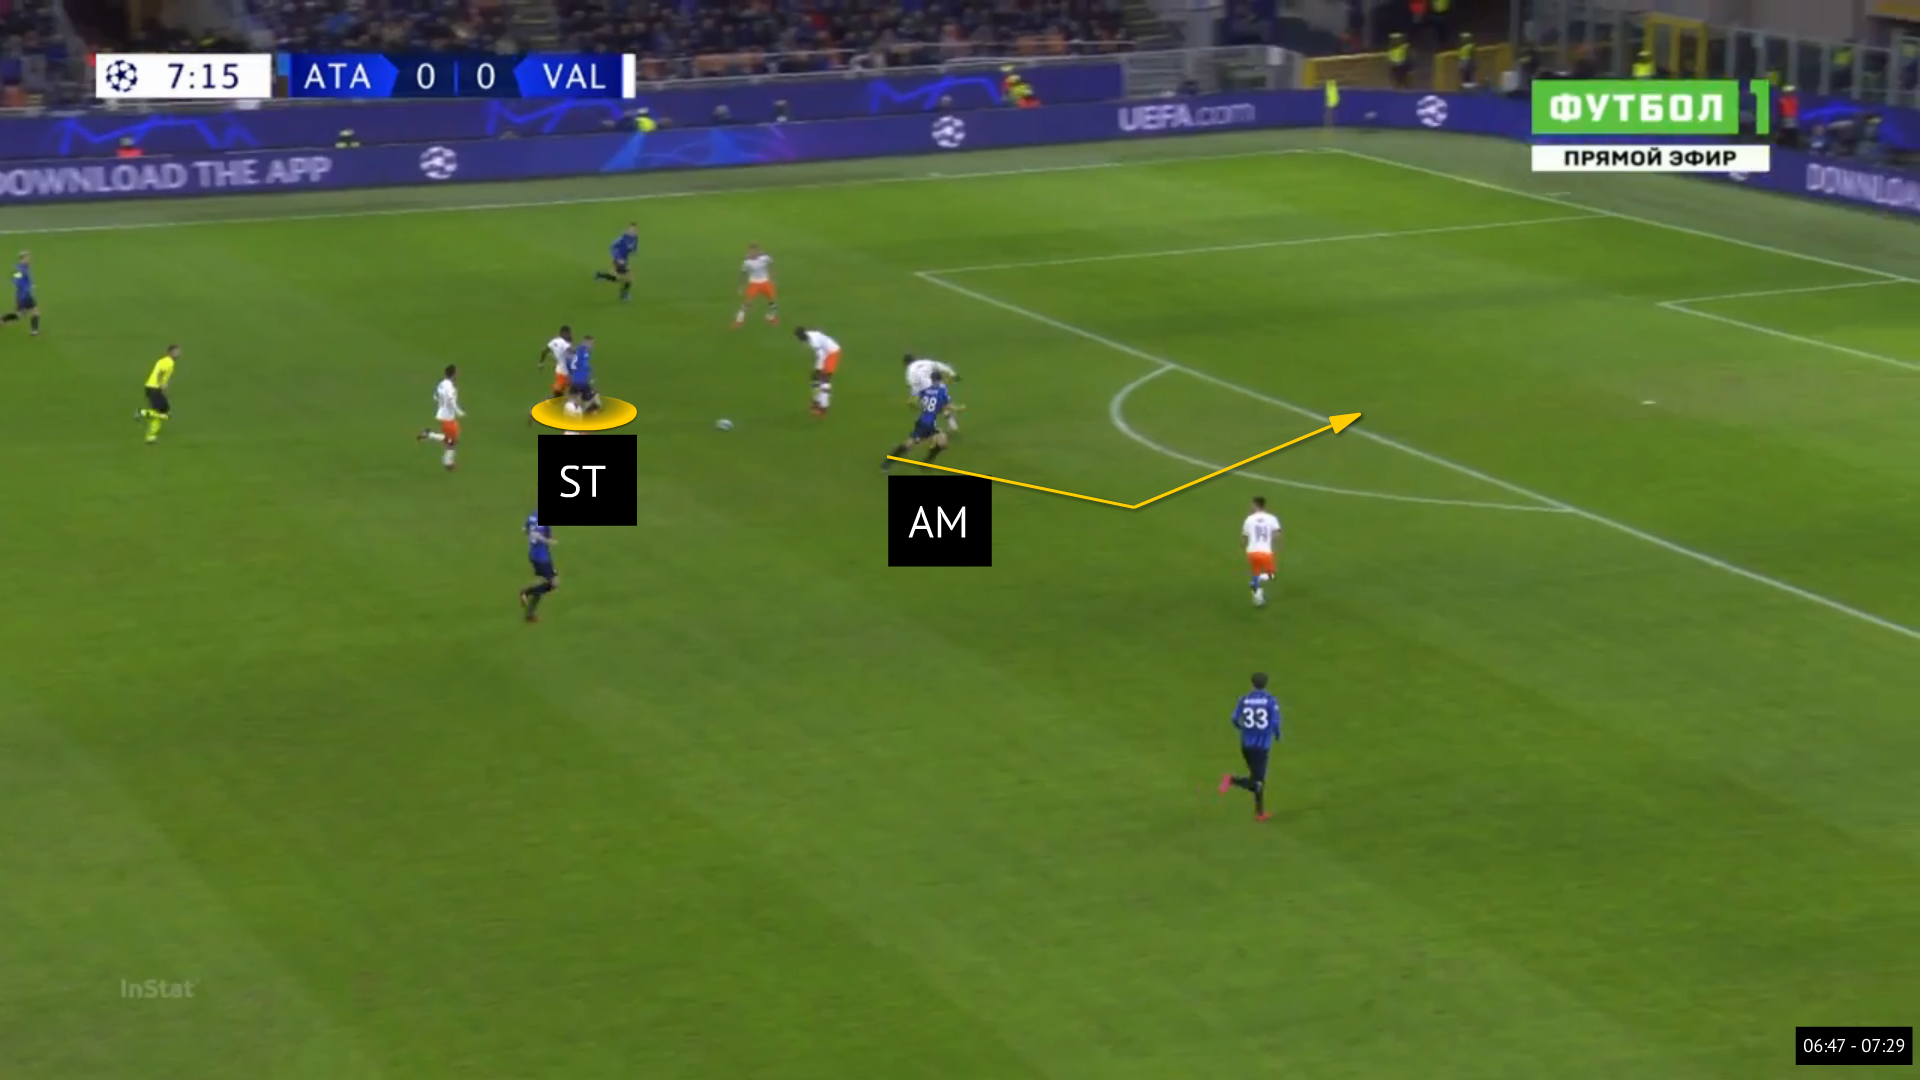 UEFA Champions League 2019/20: Atalanta vs Valencia - tactical analysis tactics